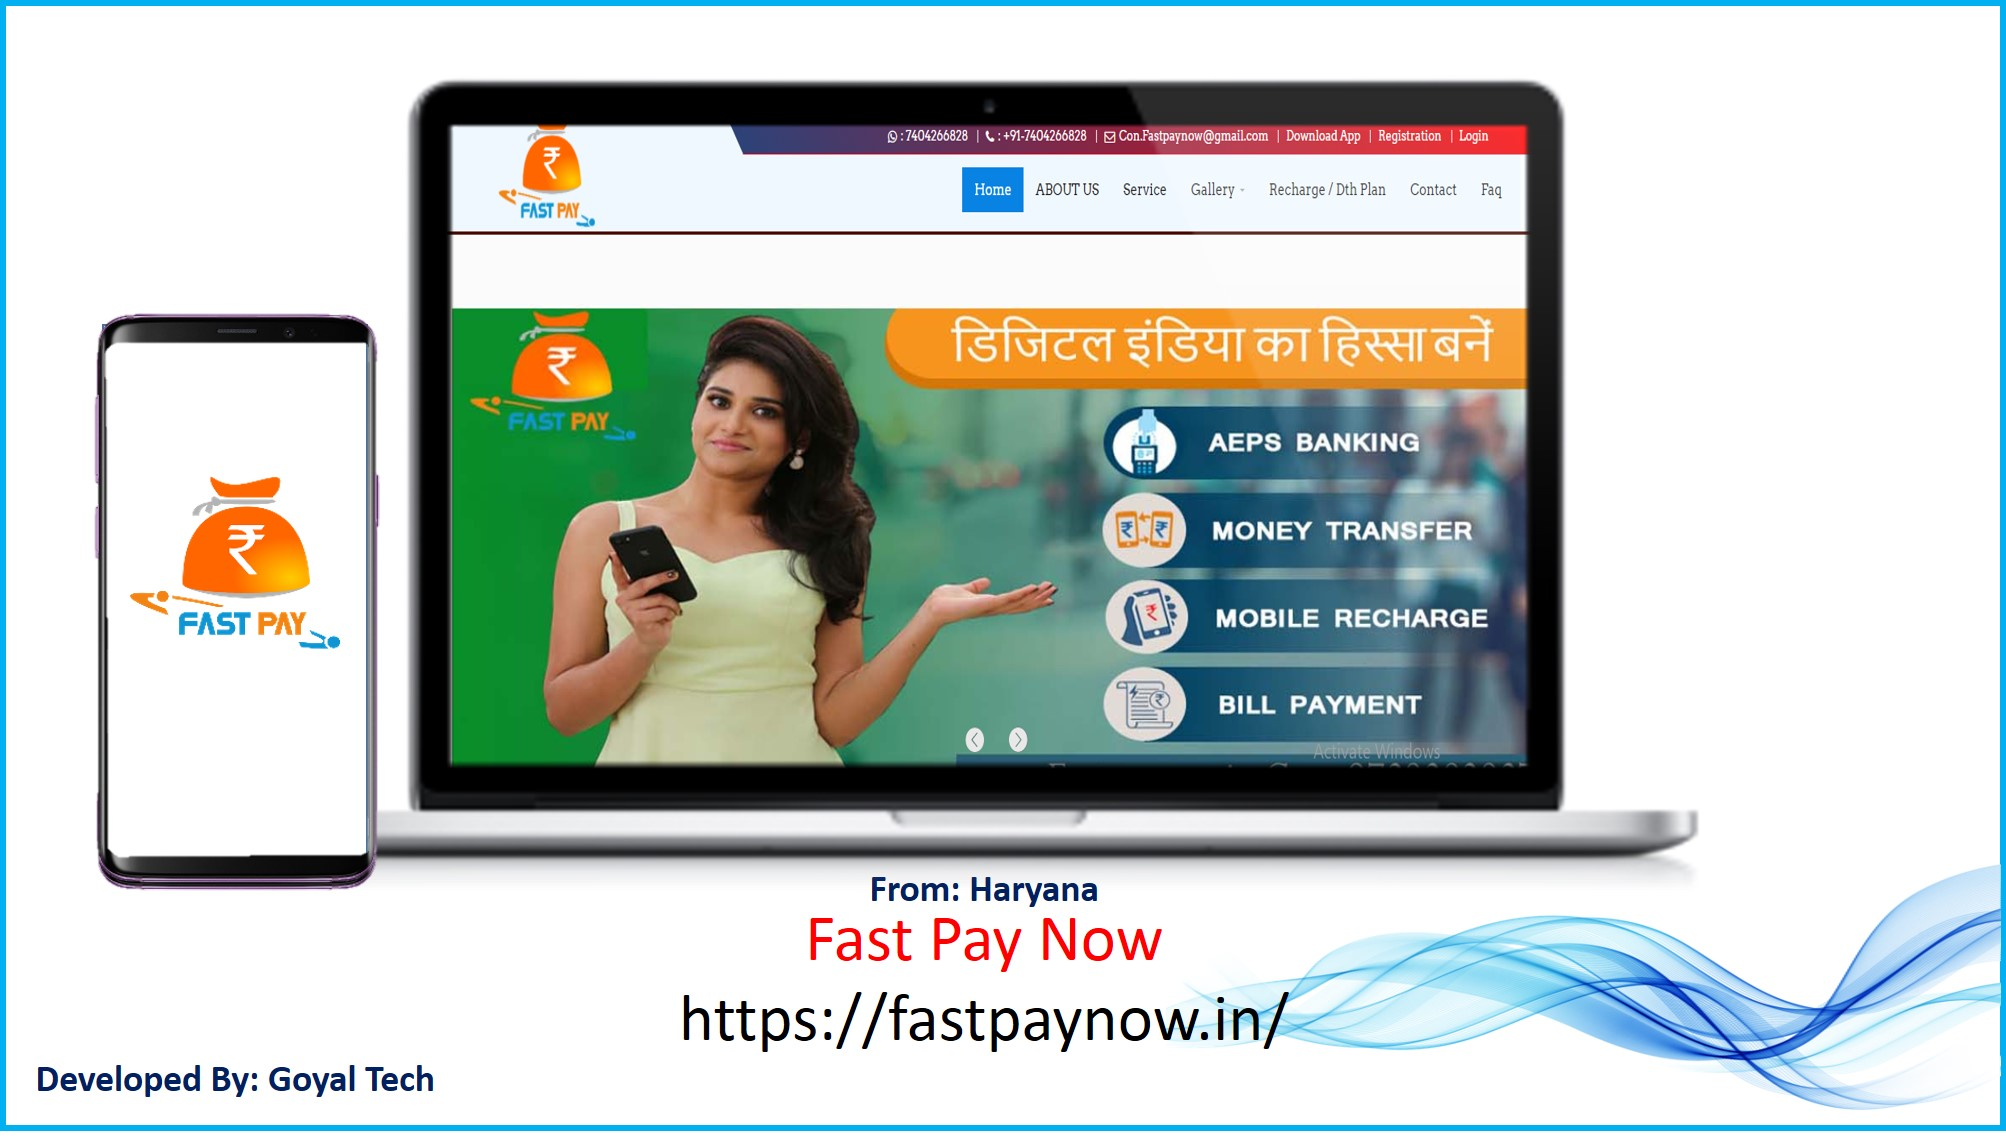 FastPay Now